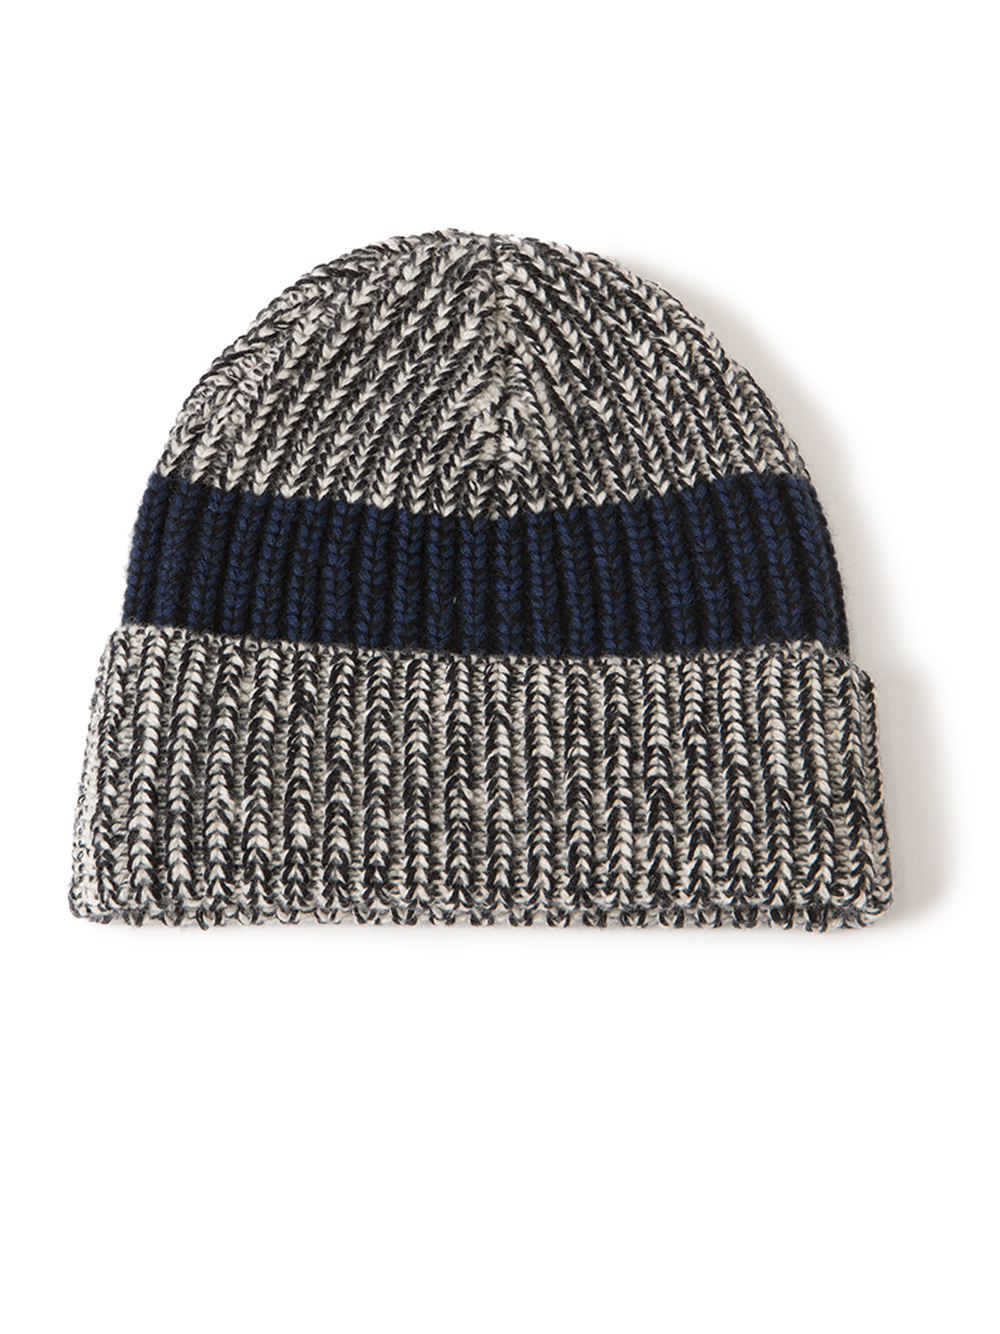 Knitting Pattern For Cashmere Beanie : Proenza schouler Cashmere Knit Beanie in Gray Lyst